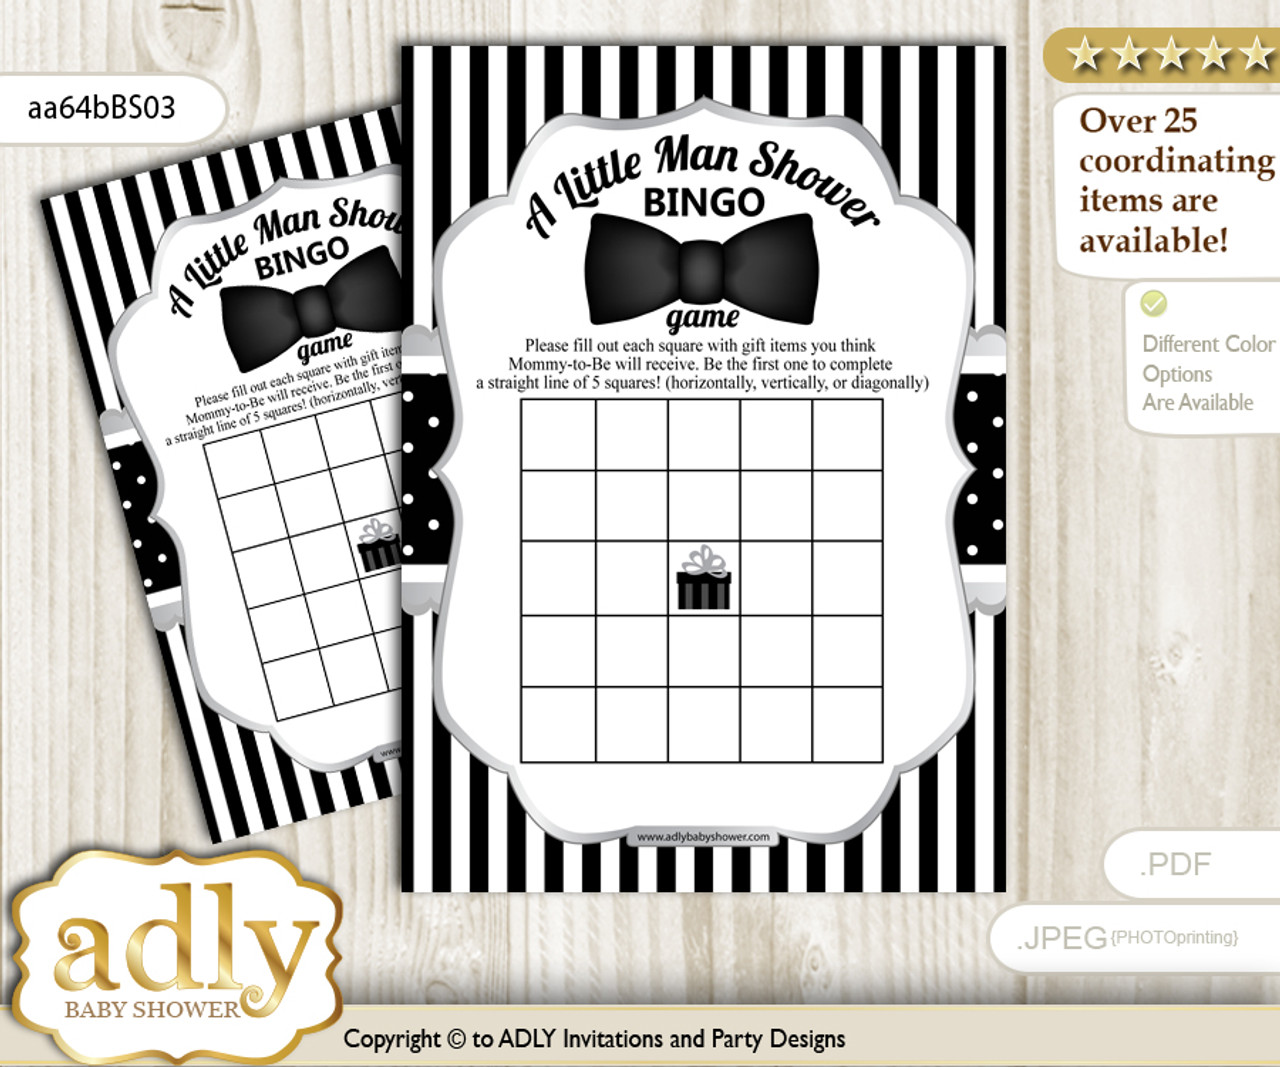 photograph about Printable Man Card identify Printable Black Silver Bow Tie Bingo Match Printable Card for Child Boy Shower Do-it-yourself gray, Black Silver, Tiny Male vm